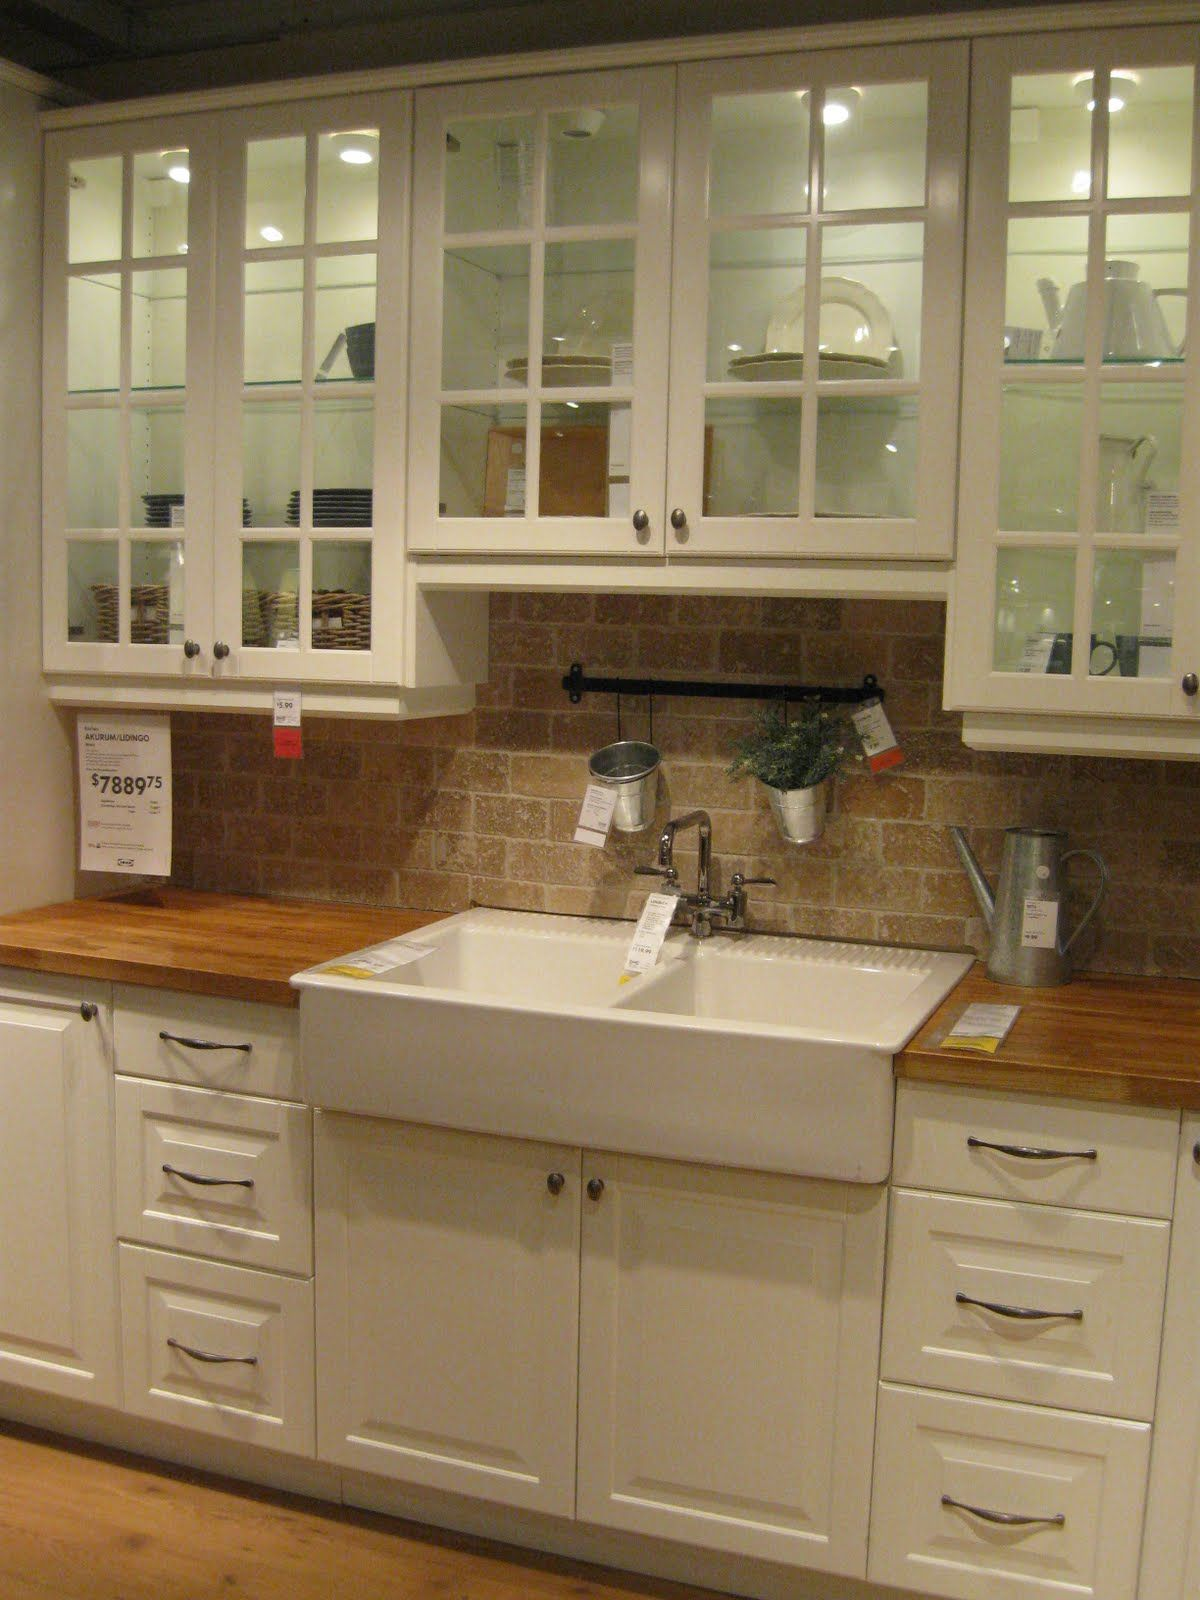 Block Küche Ikea Love This Drop In Apron Front Sink And Butcher Block Counter Tops